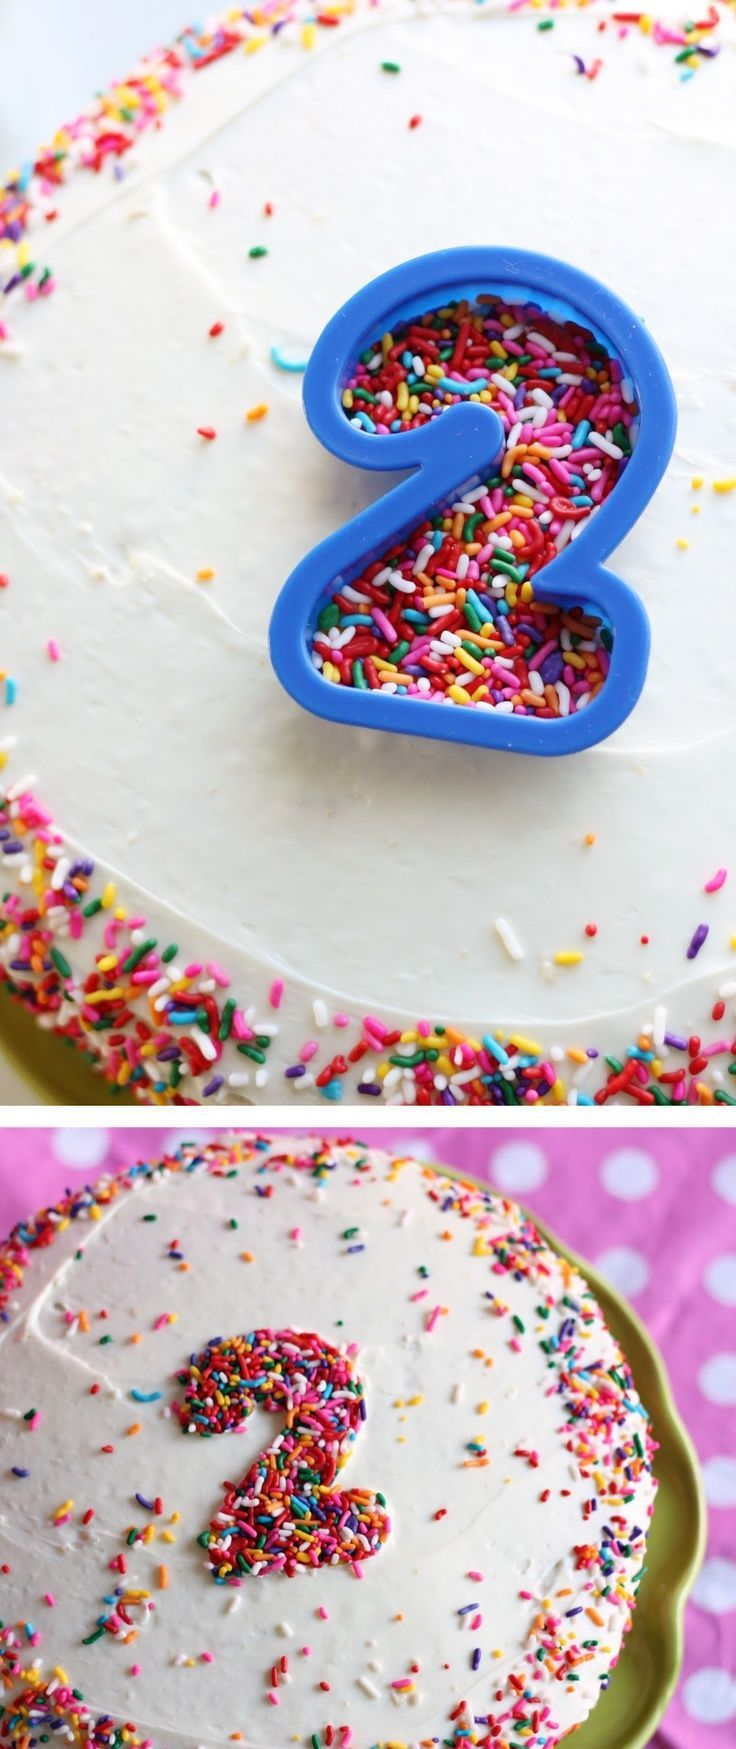 Use a cookie cutter & sprinklers to decorate a cake :) Cute!!!